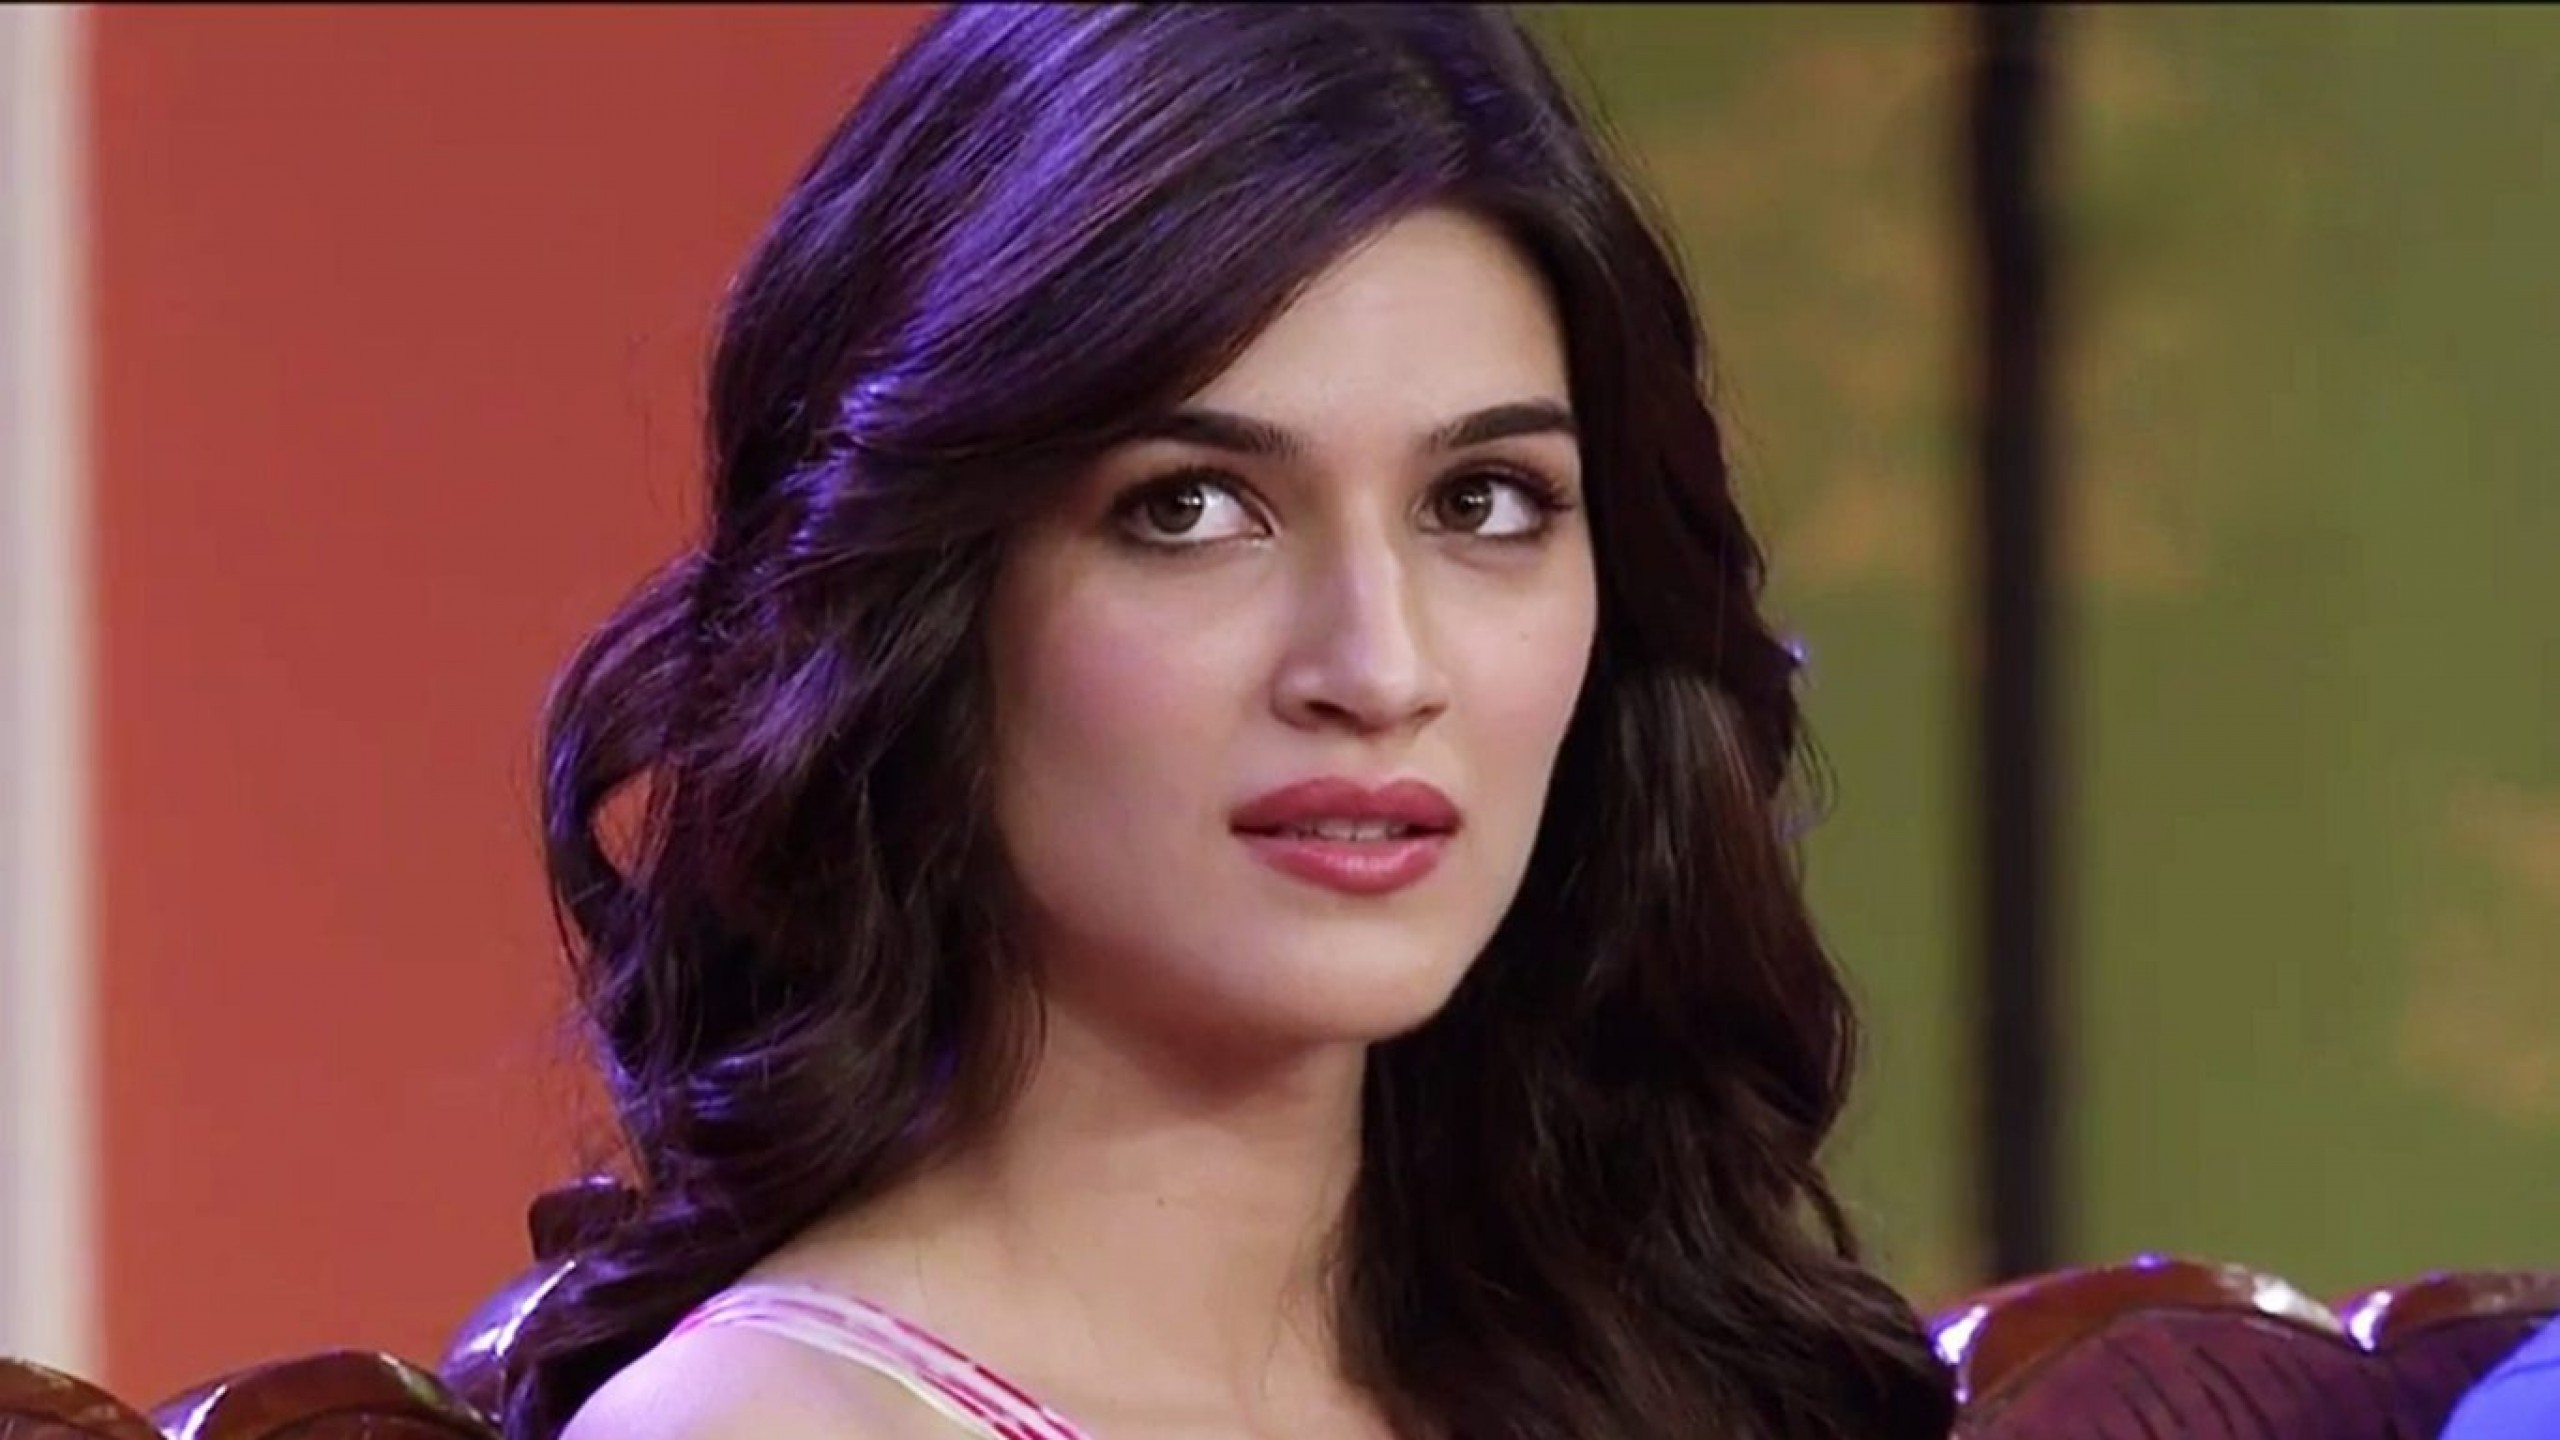 fantastic kriti sanon sweety look download mobile background hd photos free